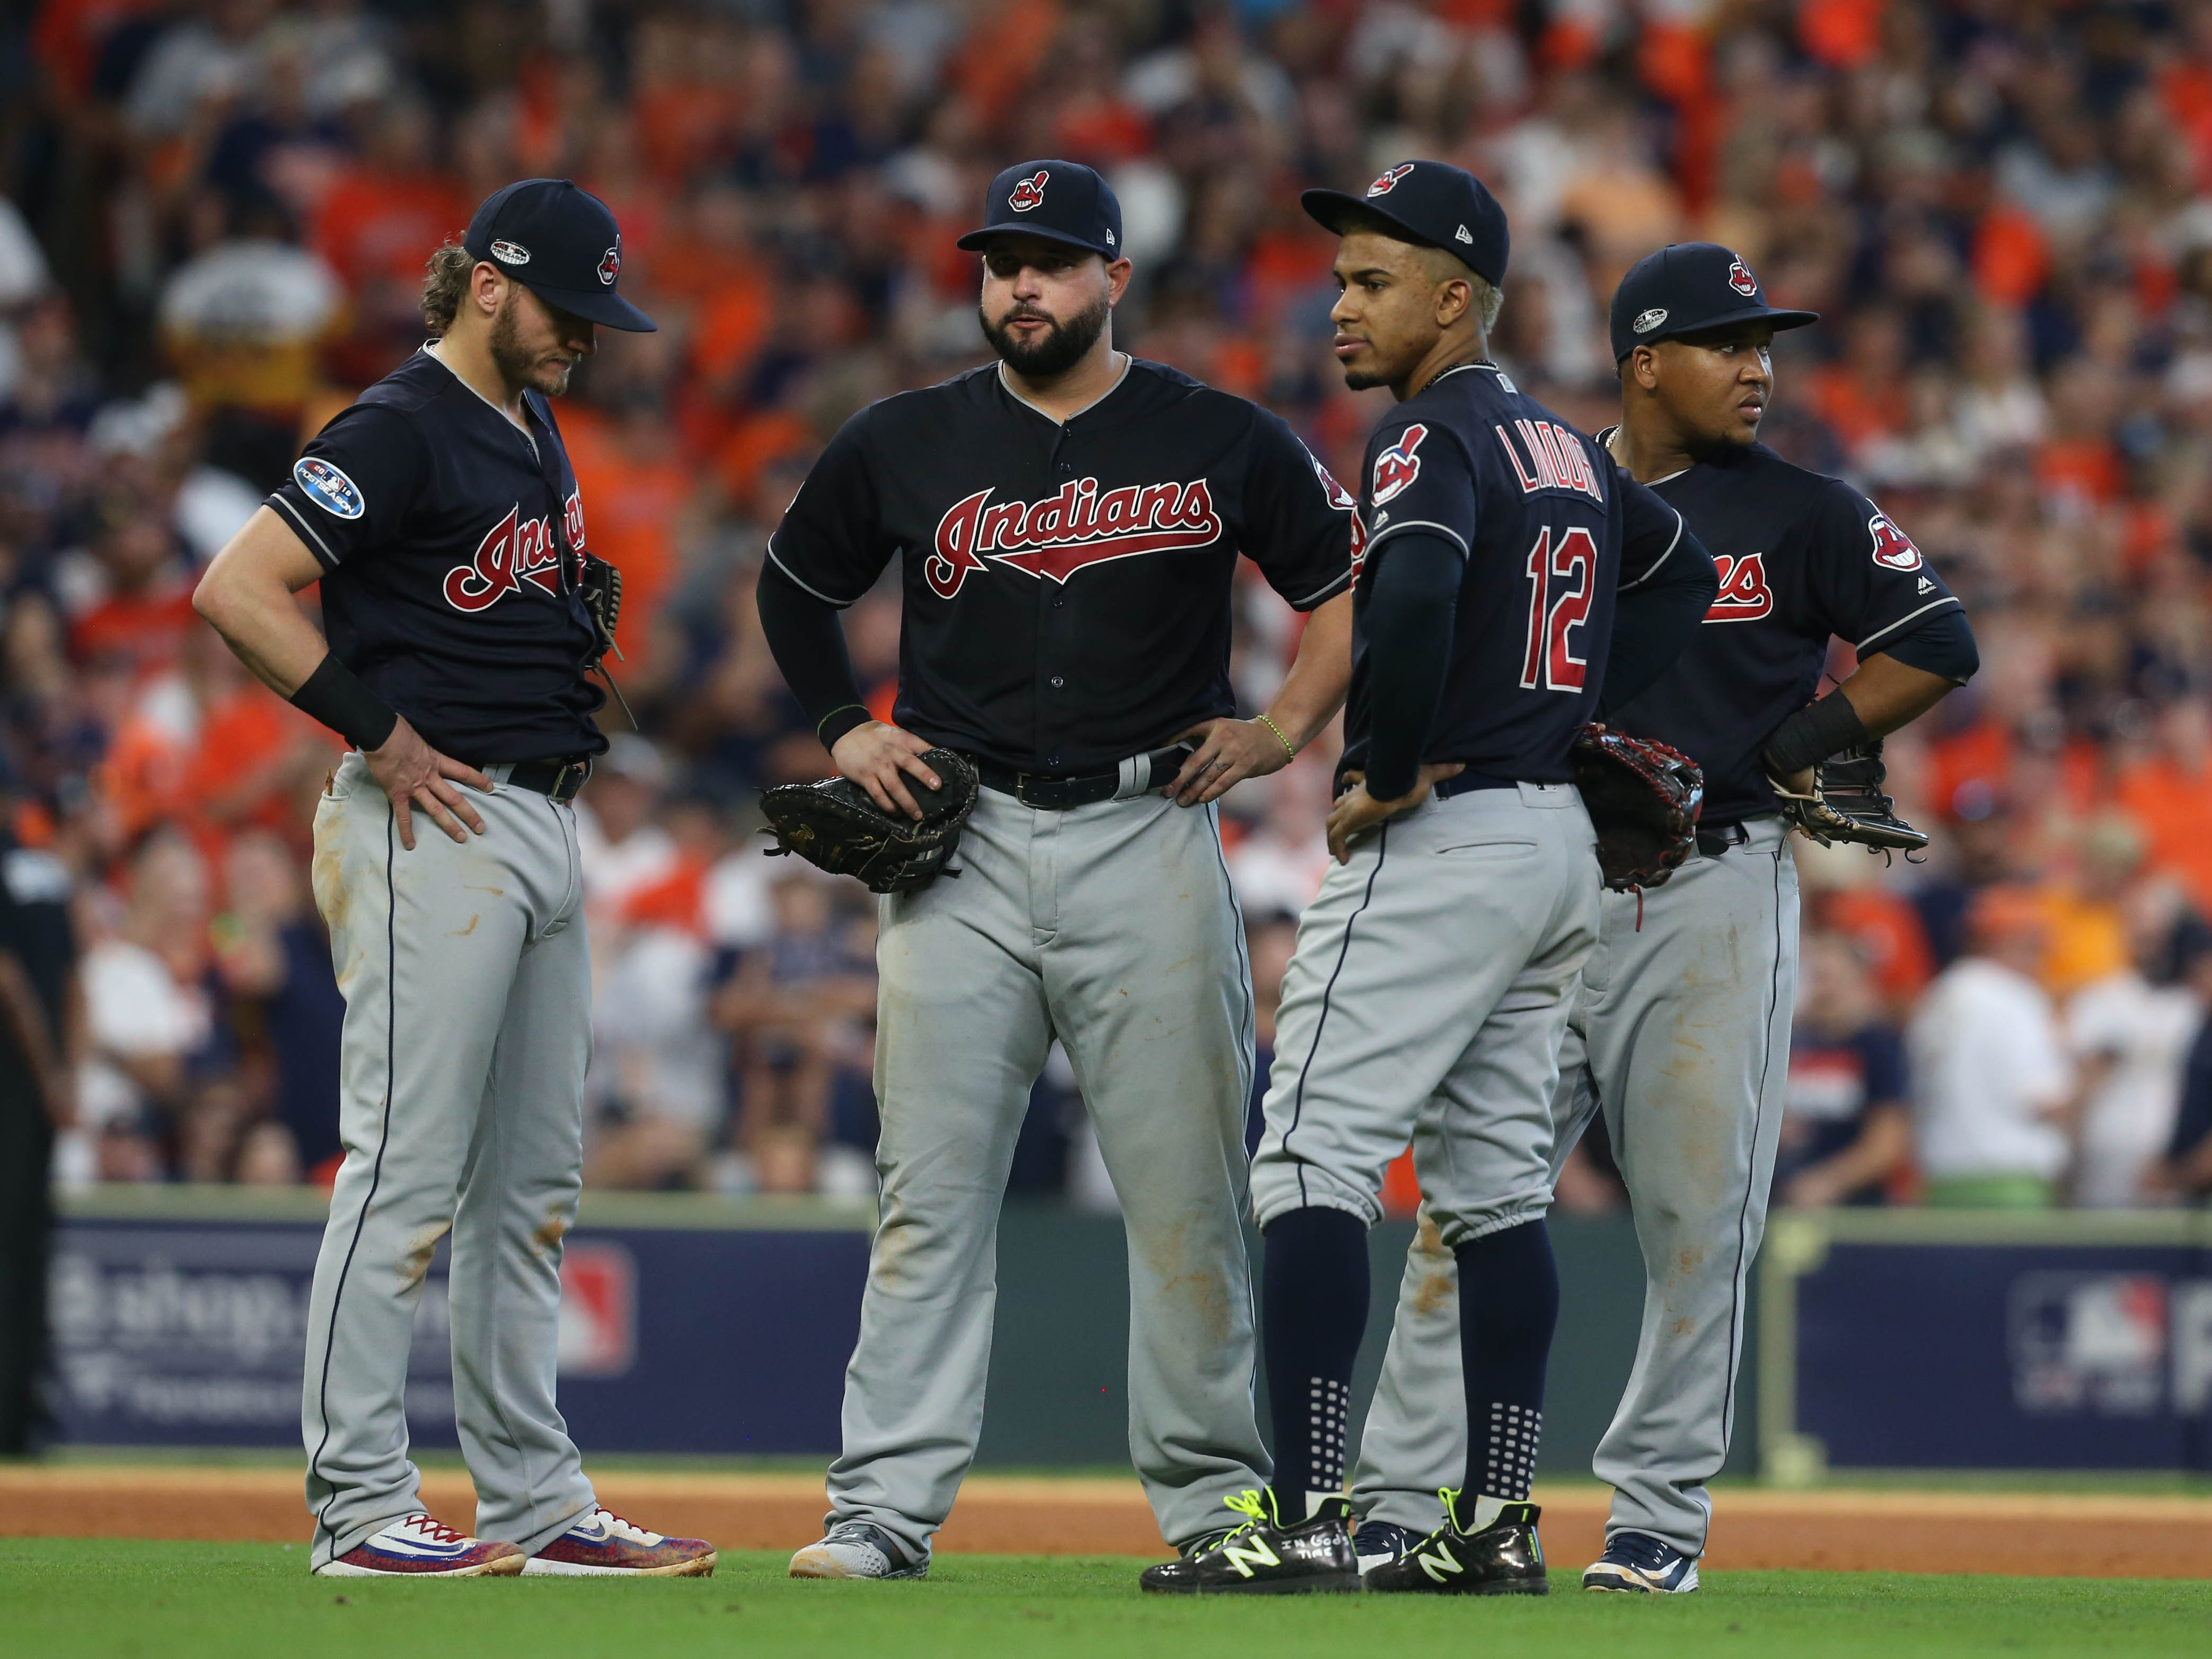 ALDS Game 2: Indians infield meet during a pitching change in the sixth inning.